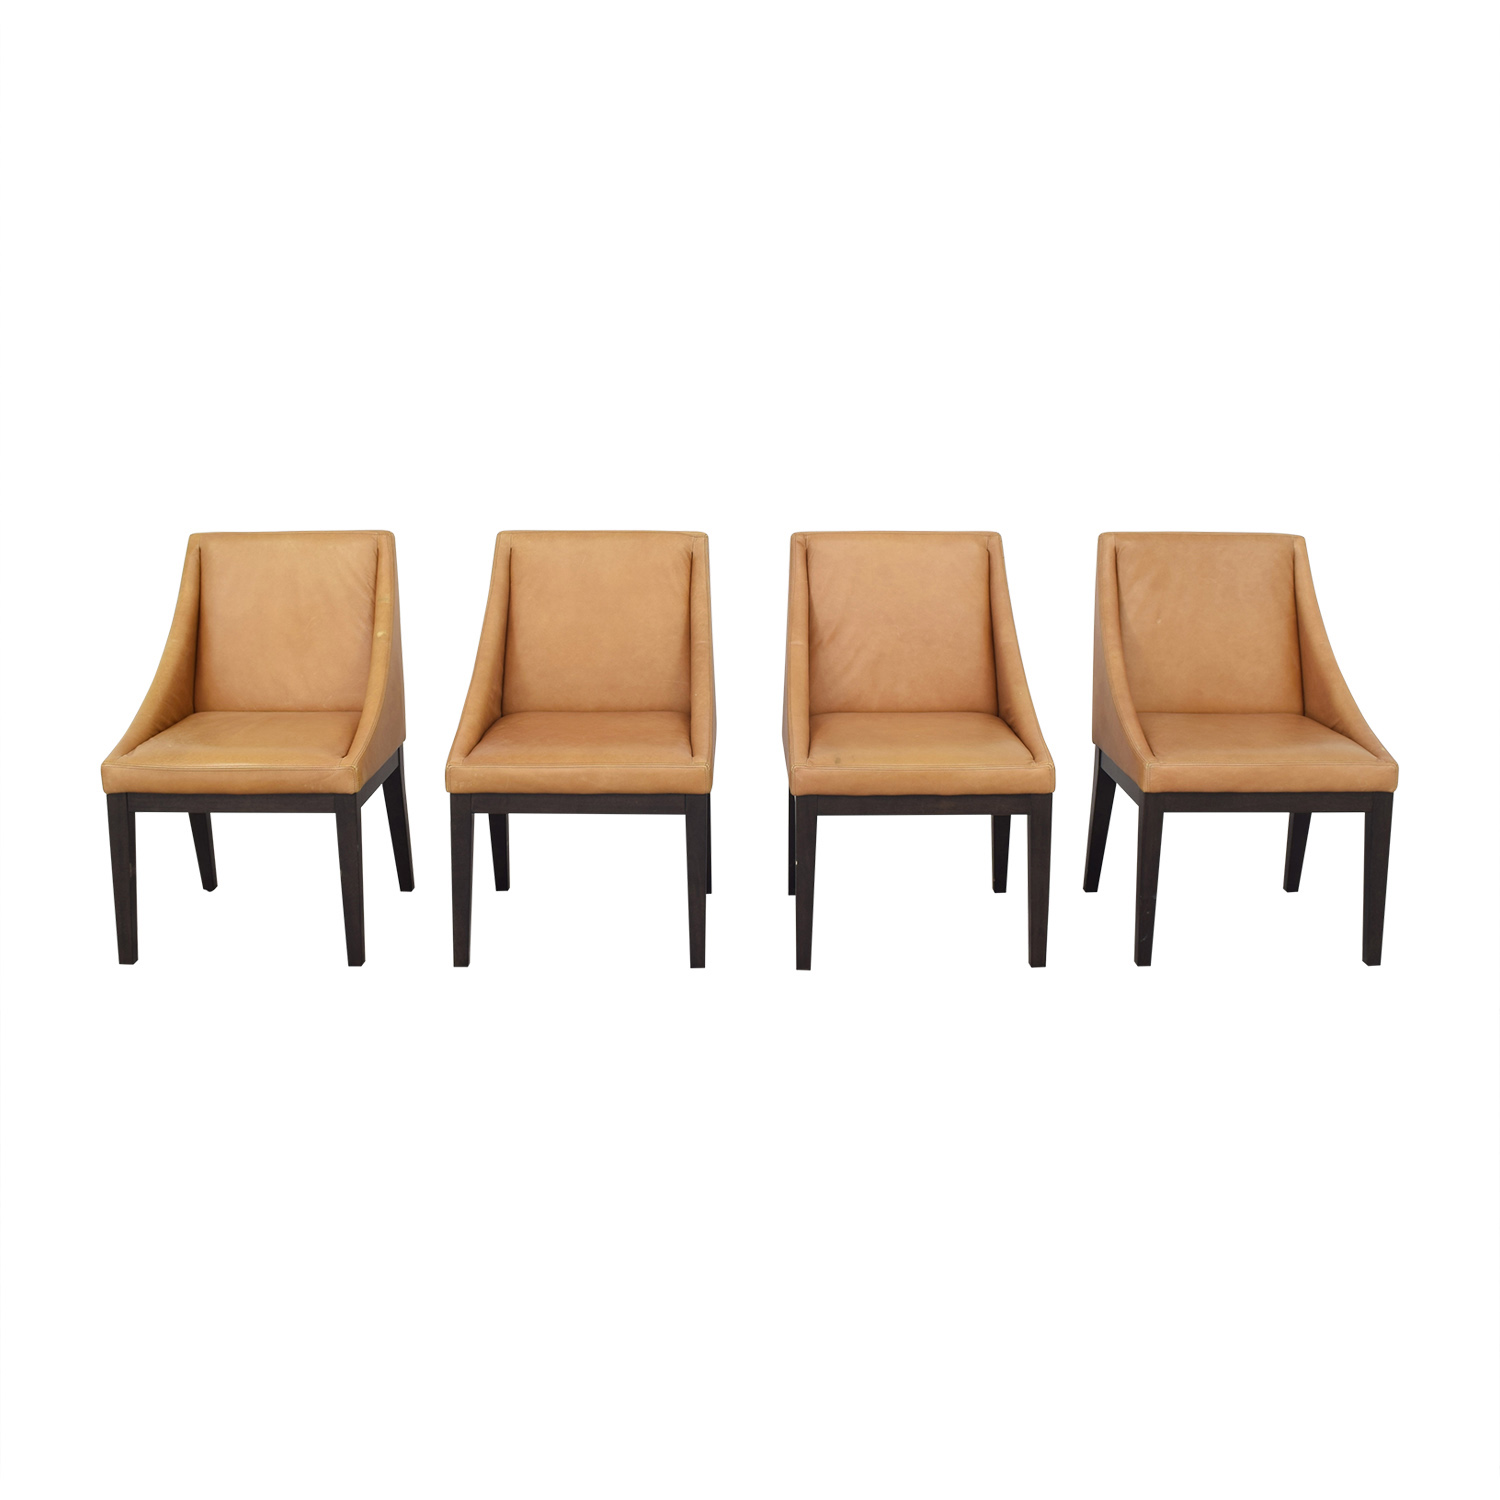 buy West Elm Curved Leather Chairs West Elm Chairs